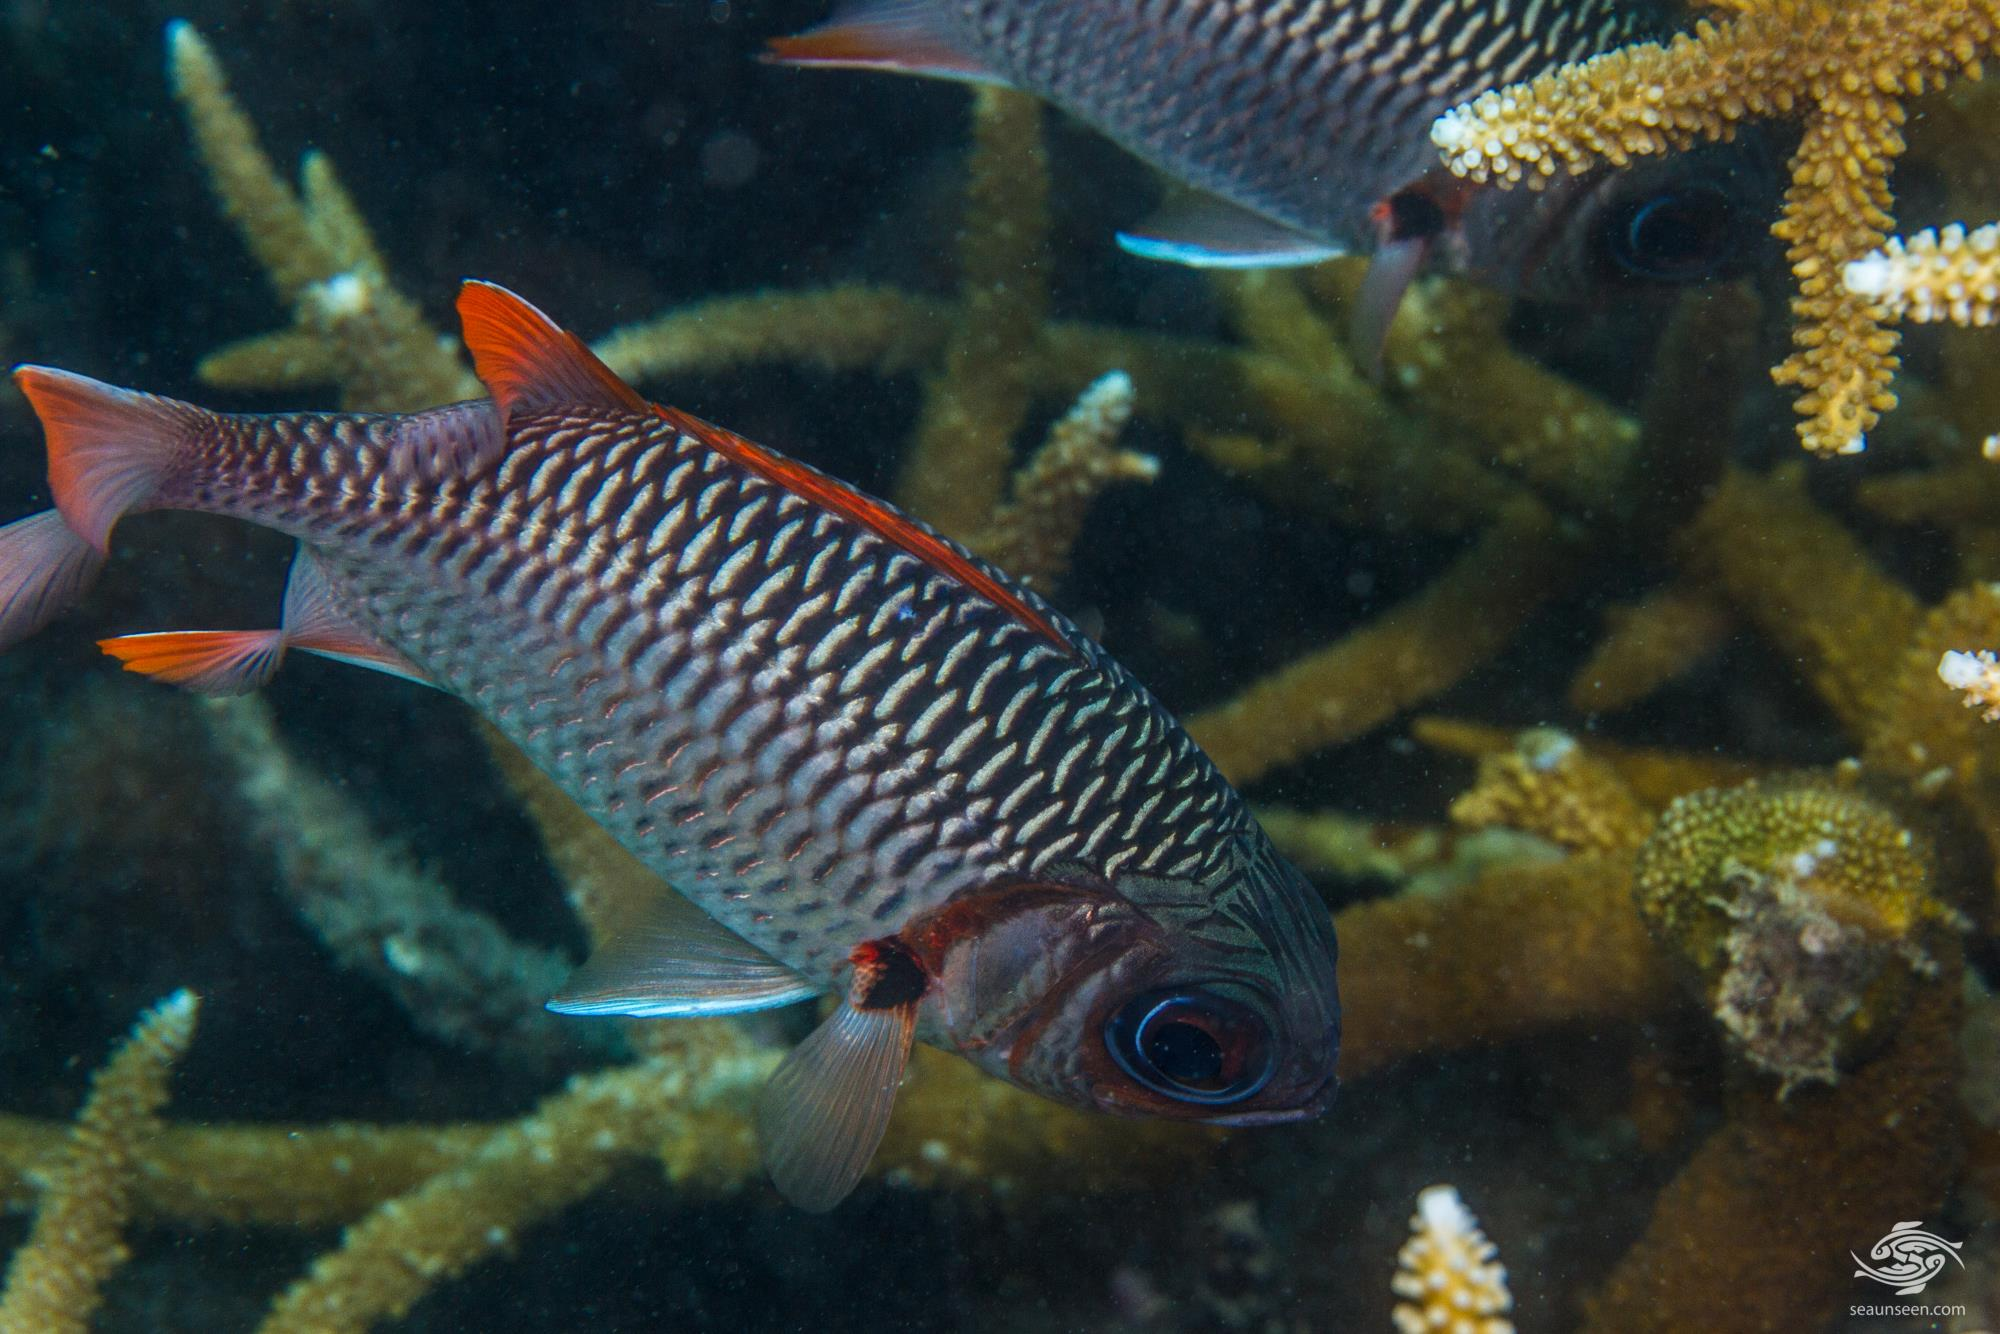 Lattice Soldierfish (Myripristis violacea) is also known as the Violet Soldierfish , Orangefin Soldierfish and the Scarlet Soldierfish.